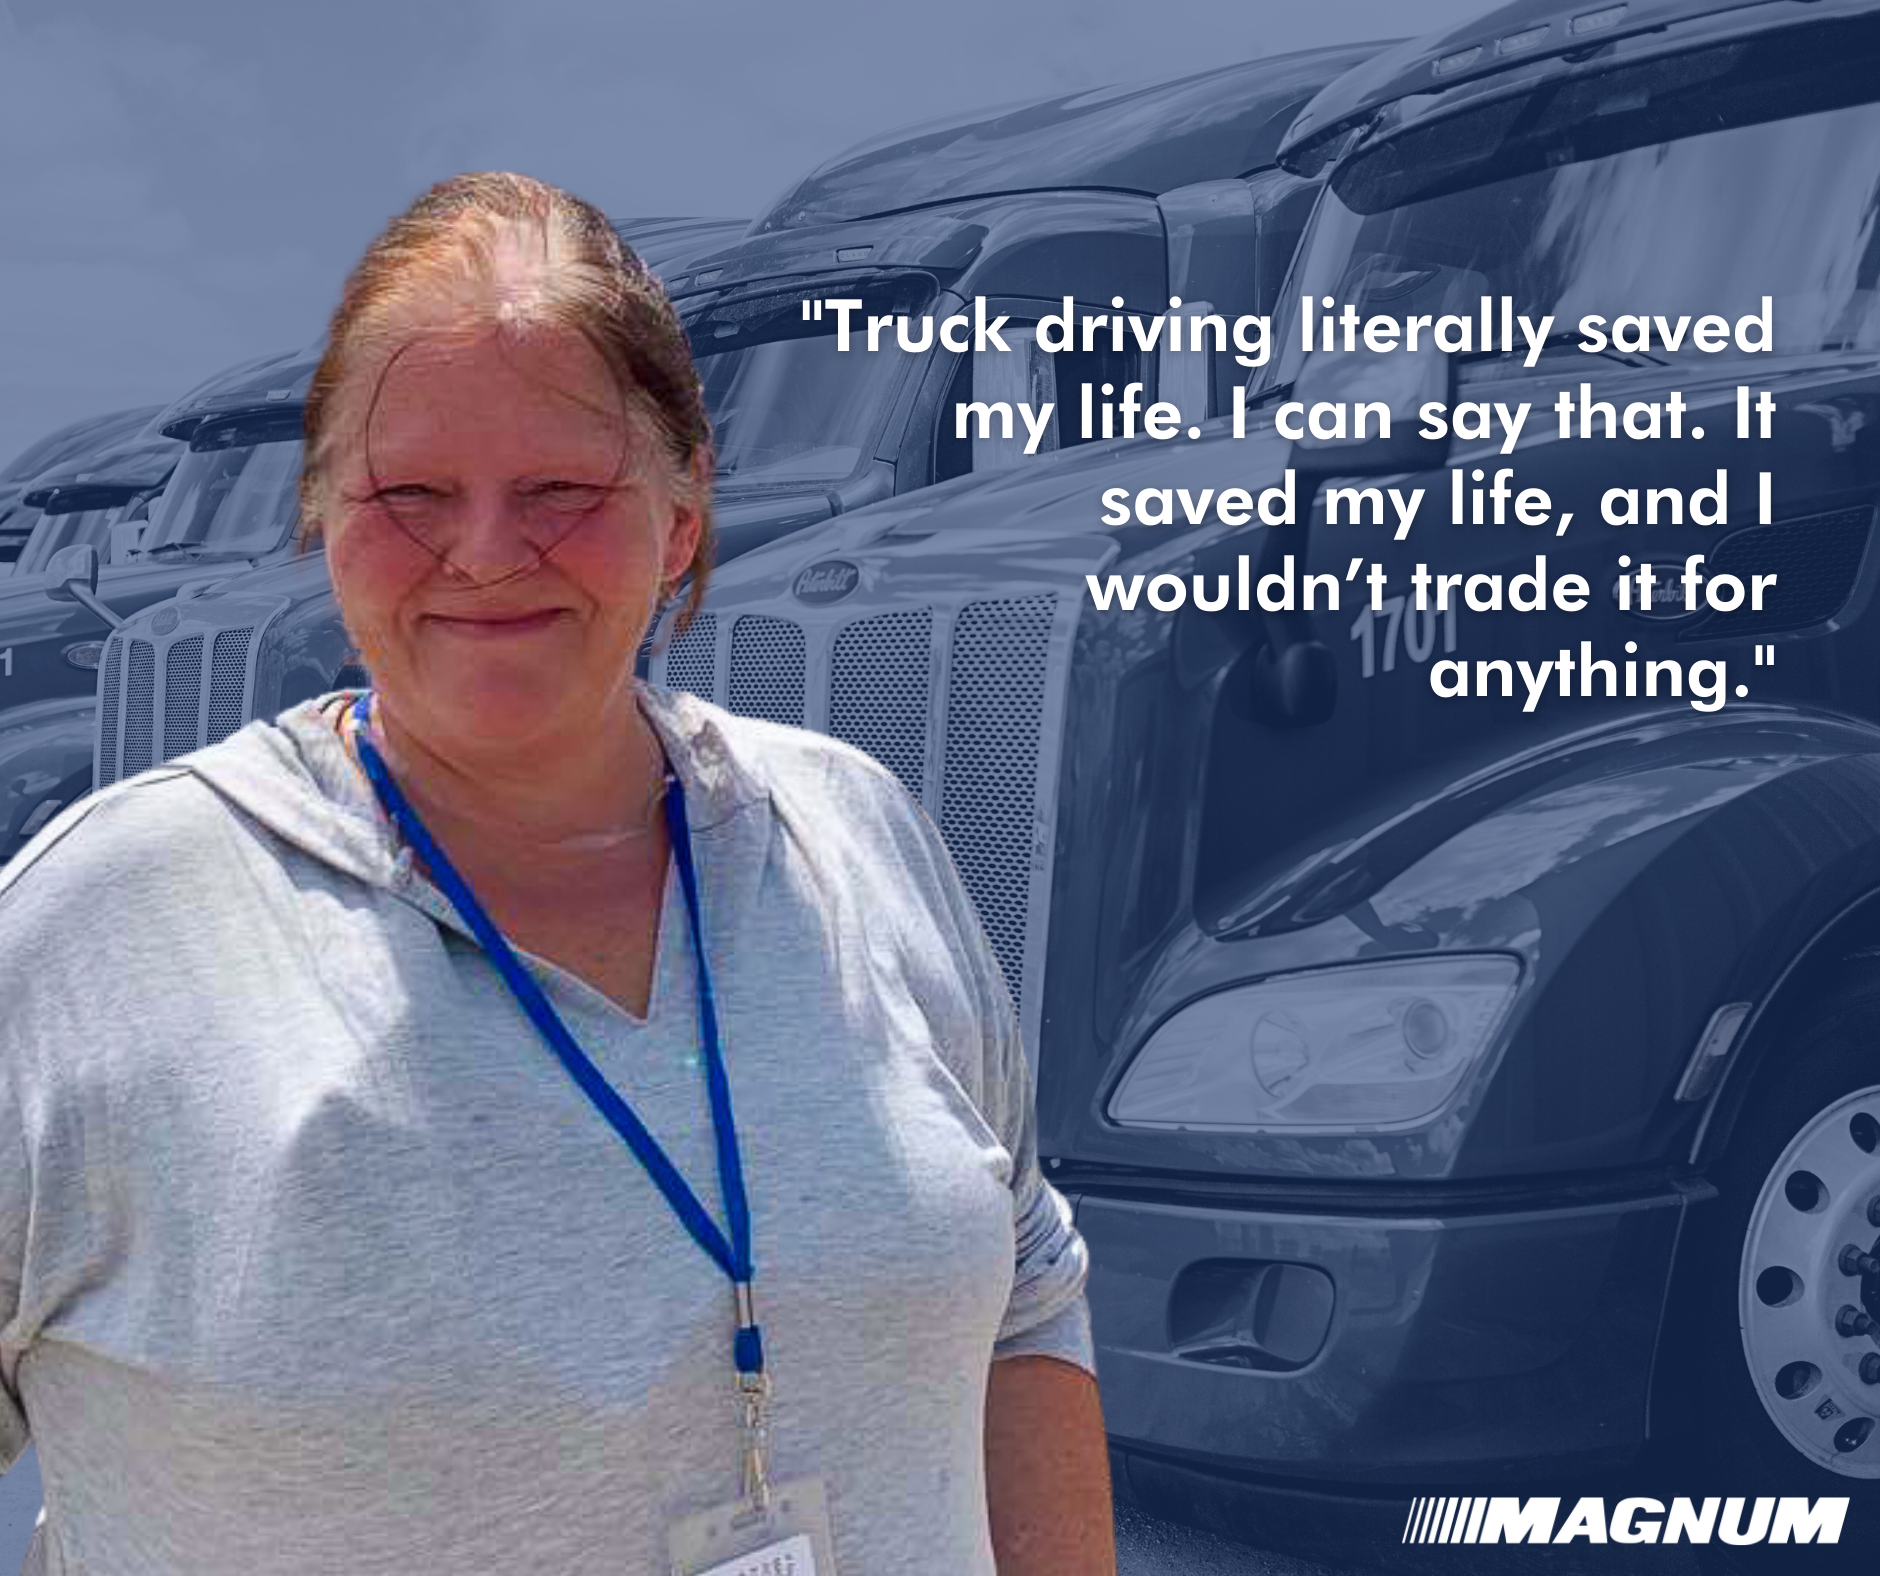 Truck Driving Saved My Life